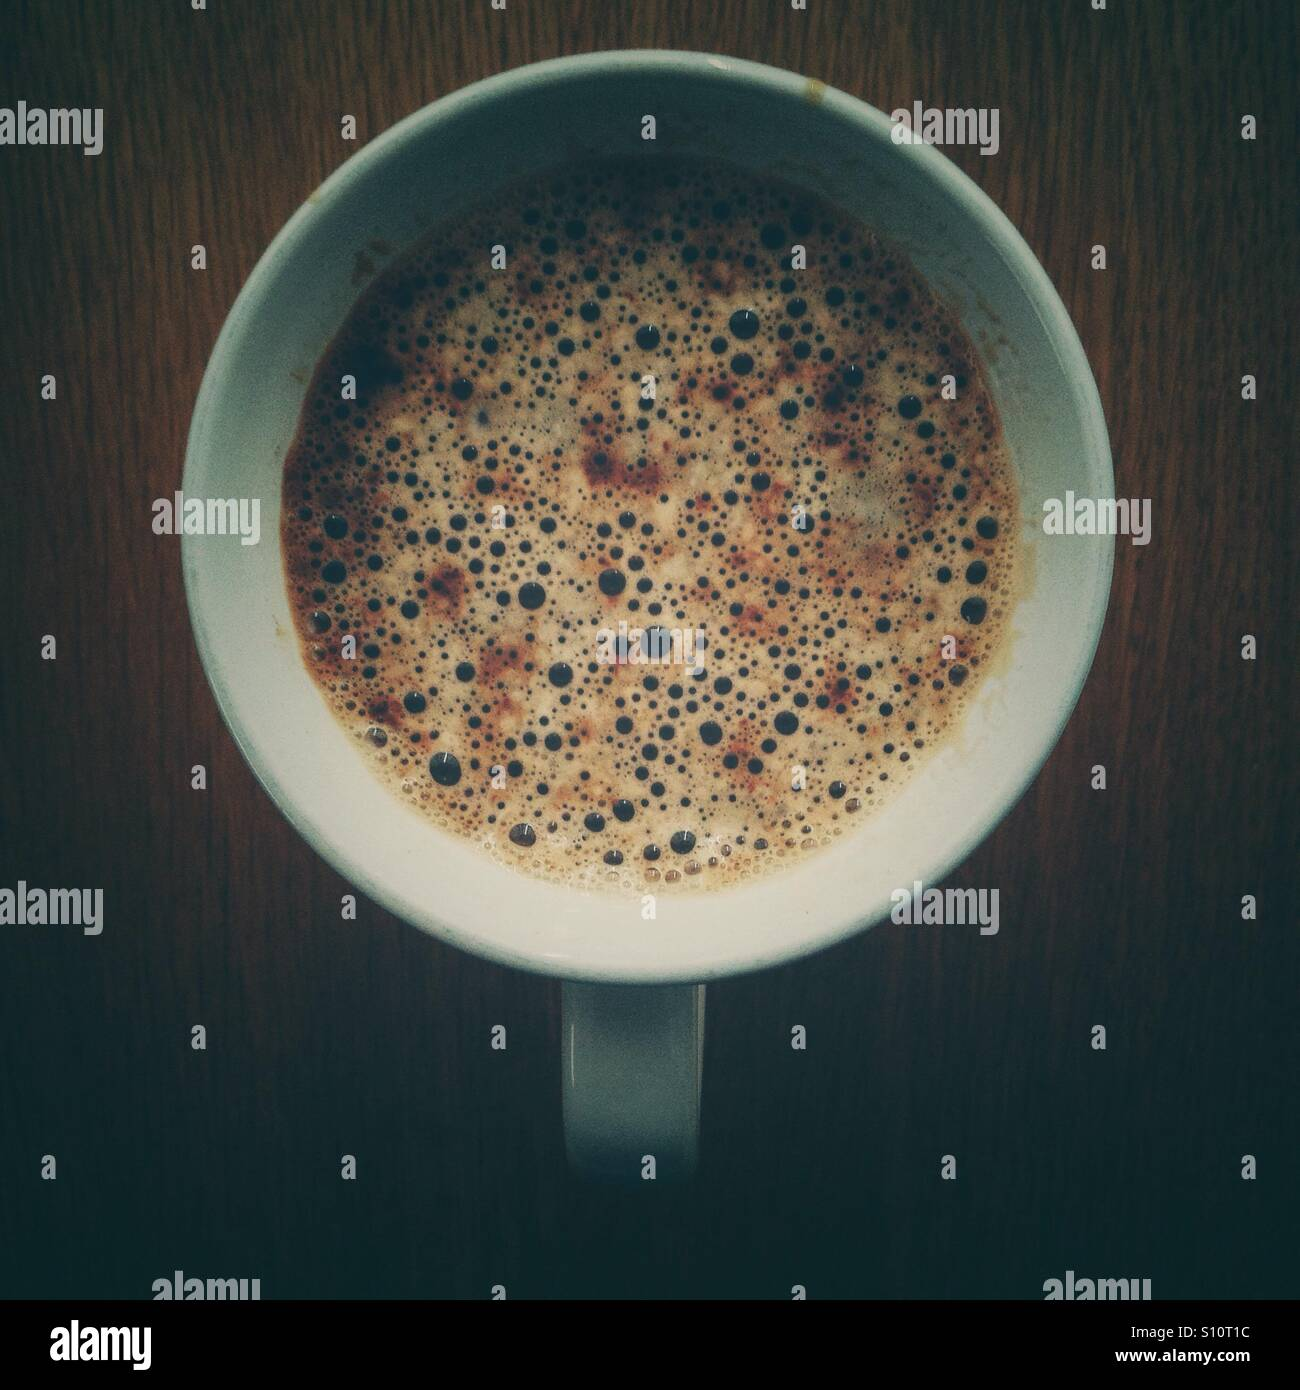 Dark coffee with bubbles. - Stock Image